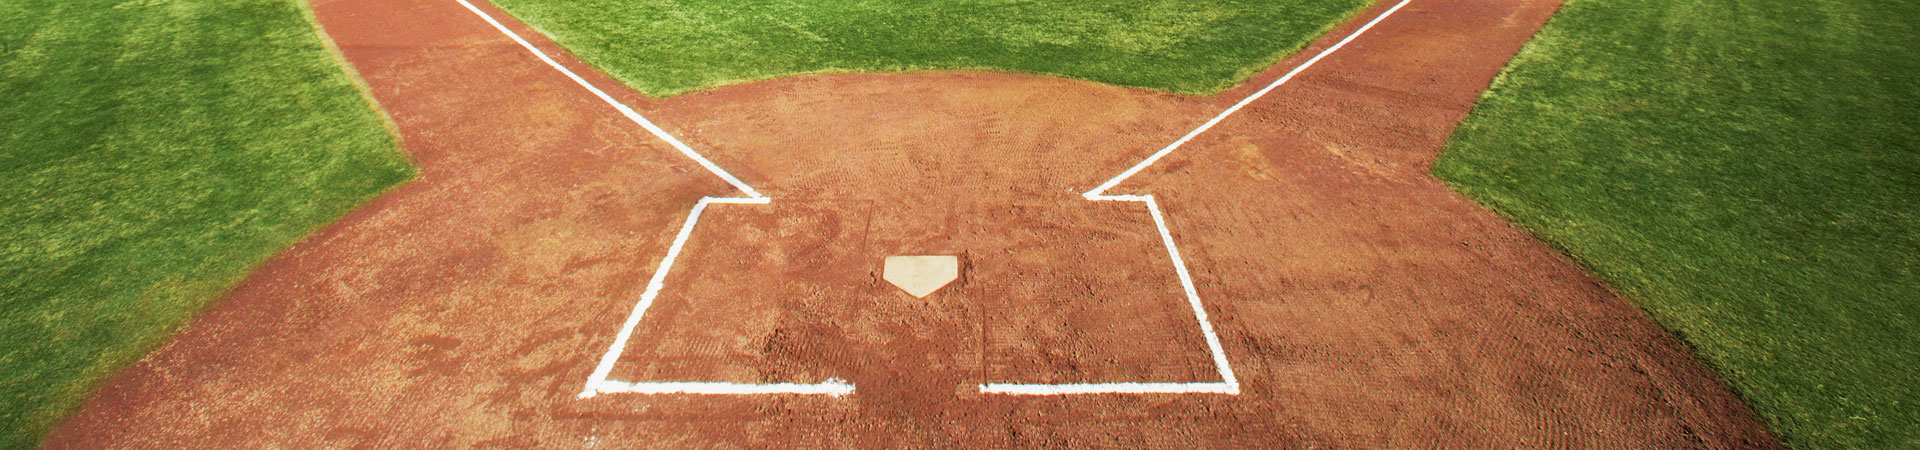 Double Play Package in Cooperstown, New York Top